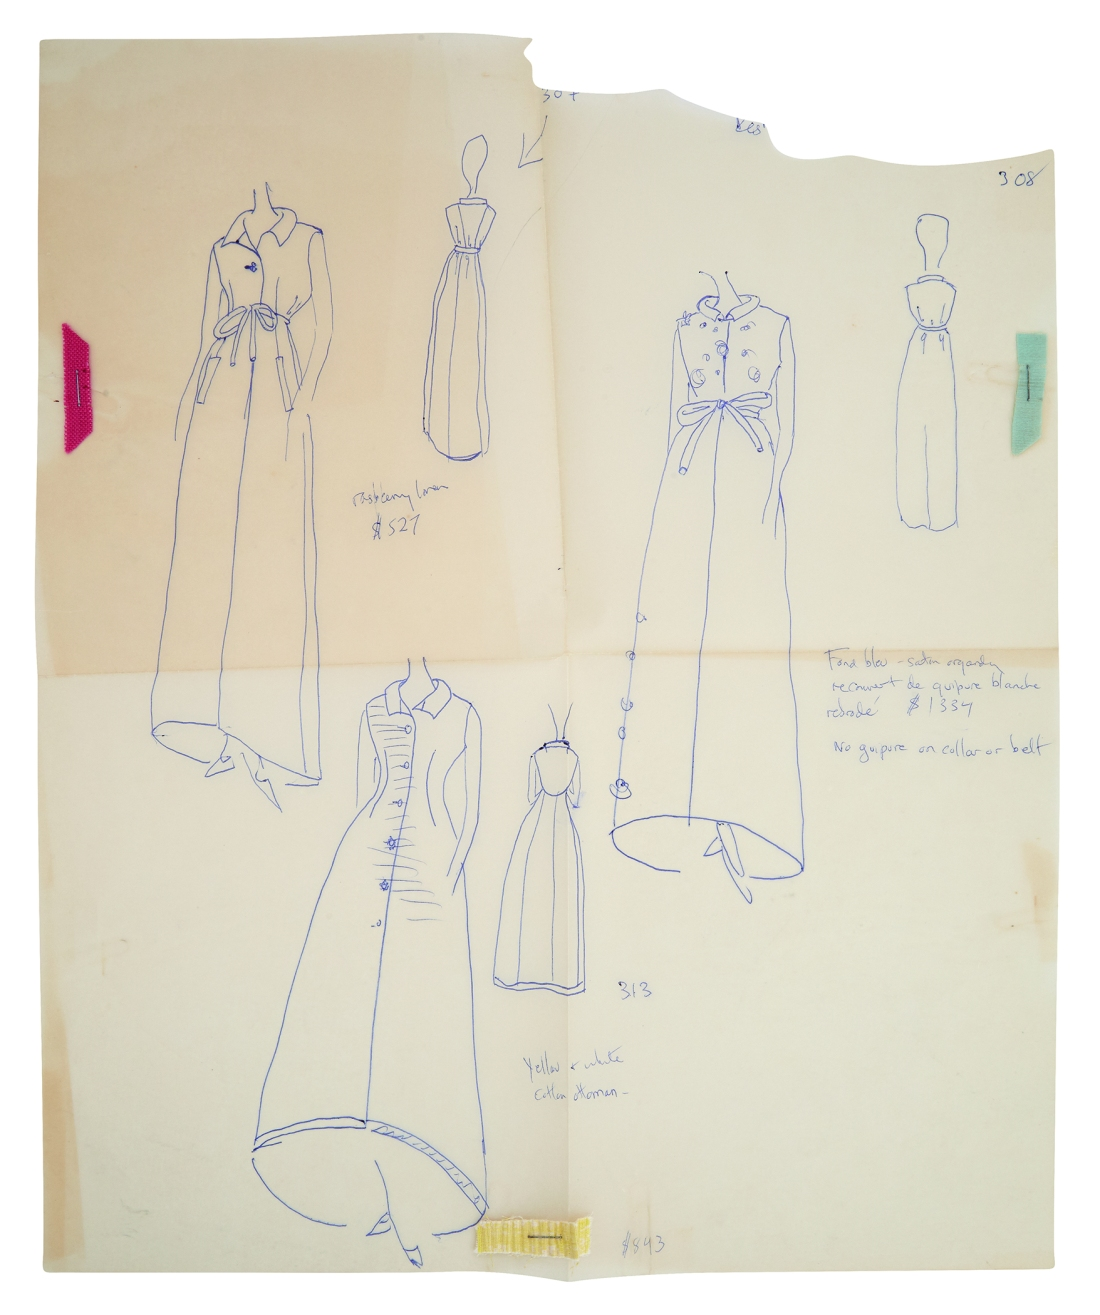 Fashion drawings done in blue ink the early 1960s by First Lady Jackie Kennedy, showing six figures in long dresses.